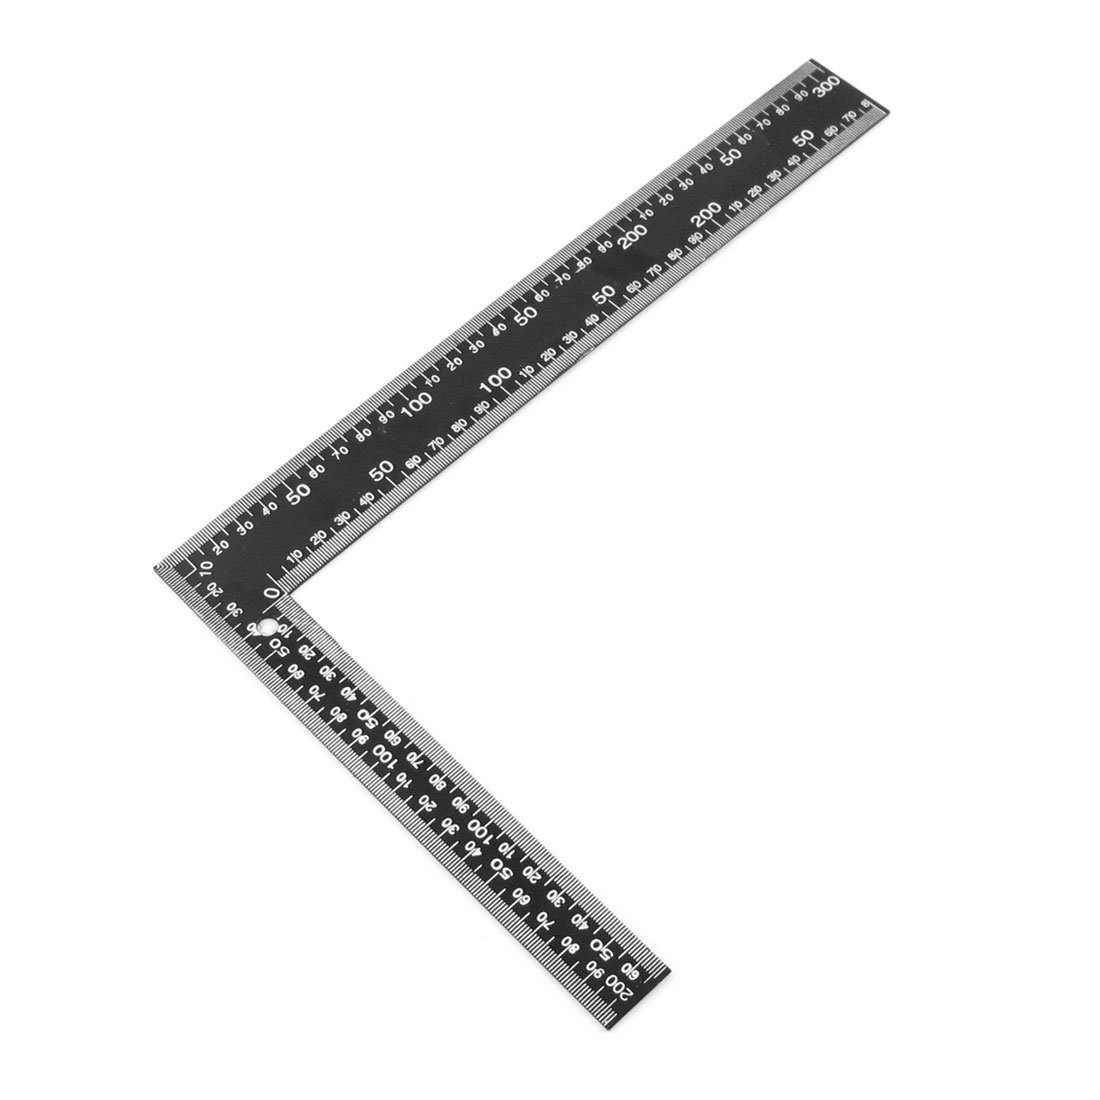 SOSW-Teacher 0-30cm 0-20cm Measuring Range L Shaped Design Square Ruler Black